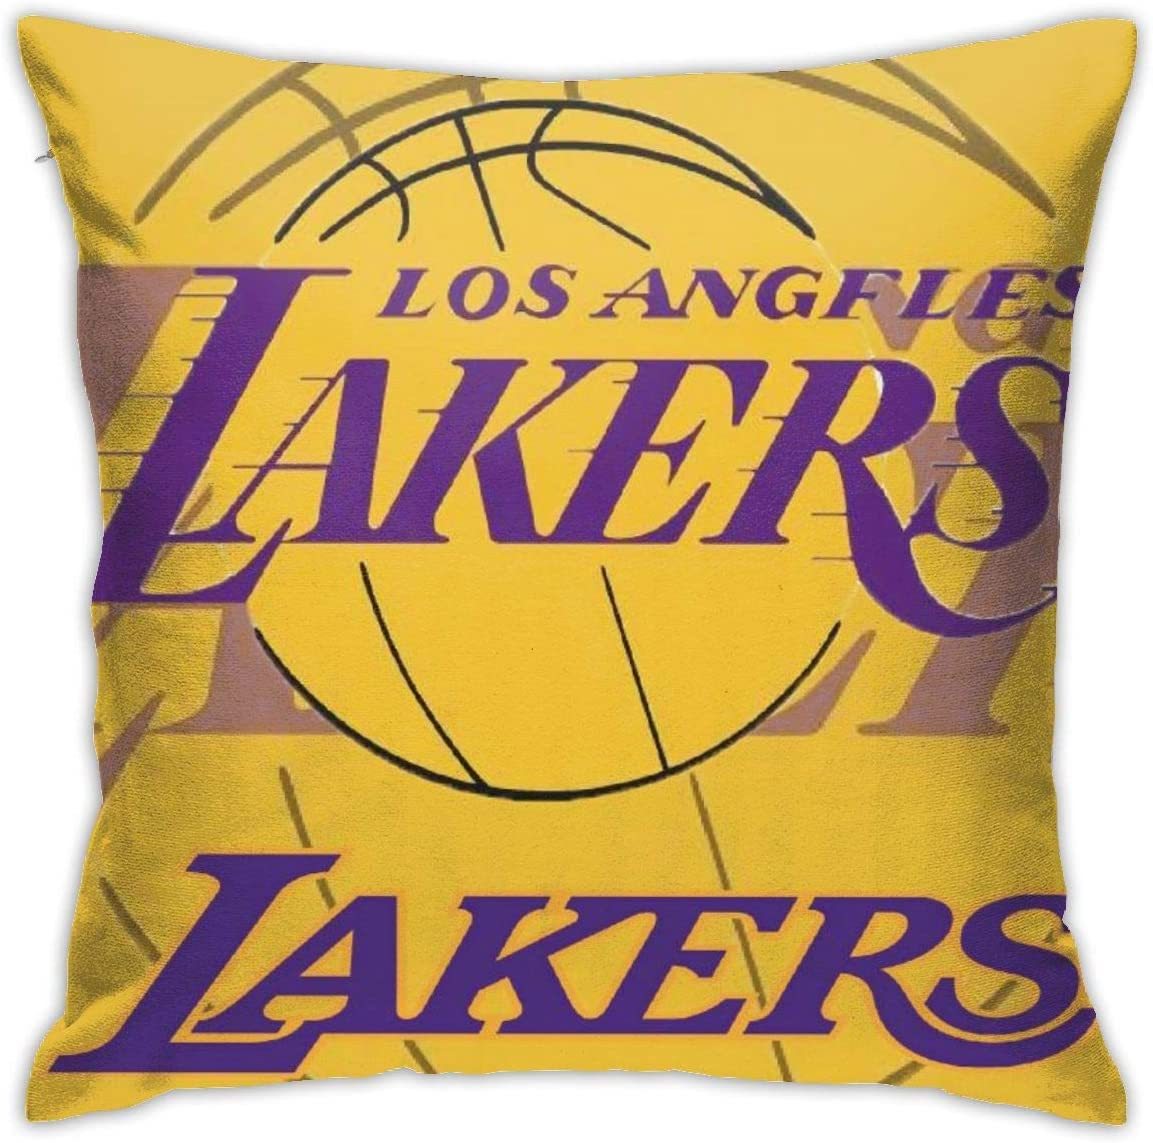 Amazon Com Franklin Sports Los Angeles Lakers Soft Cushion Covers Comfortable Decorative Square Throw Pillow Covers For Sofa Bedroom 18 X 18 Inch Home Kitchen